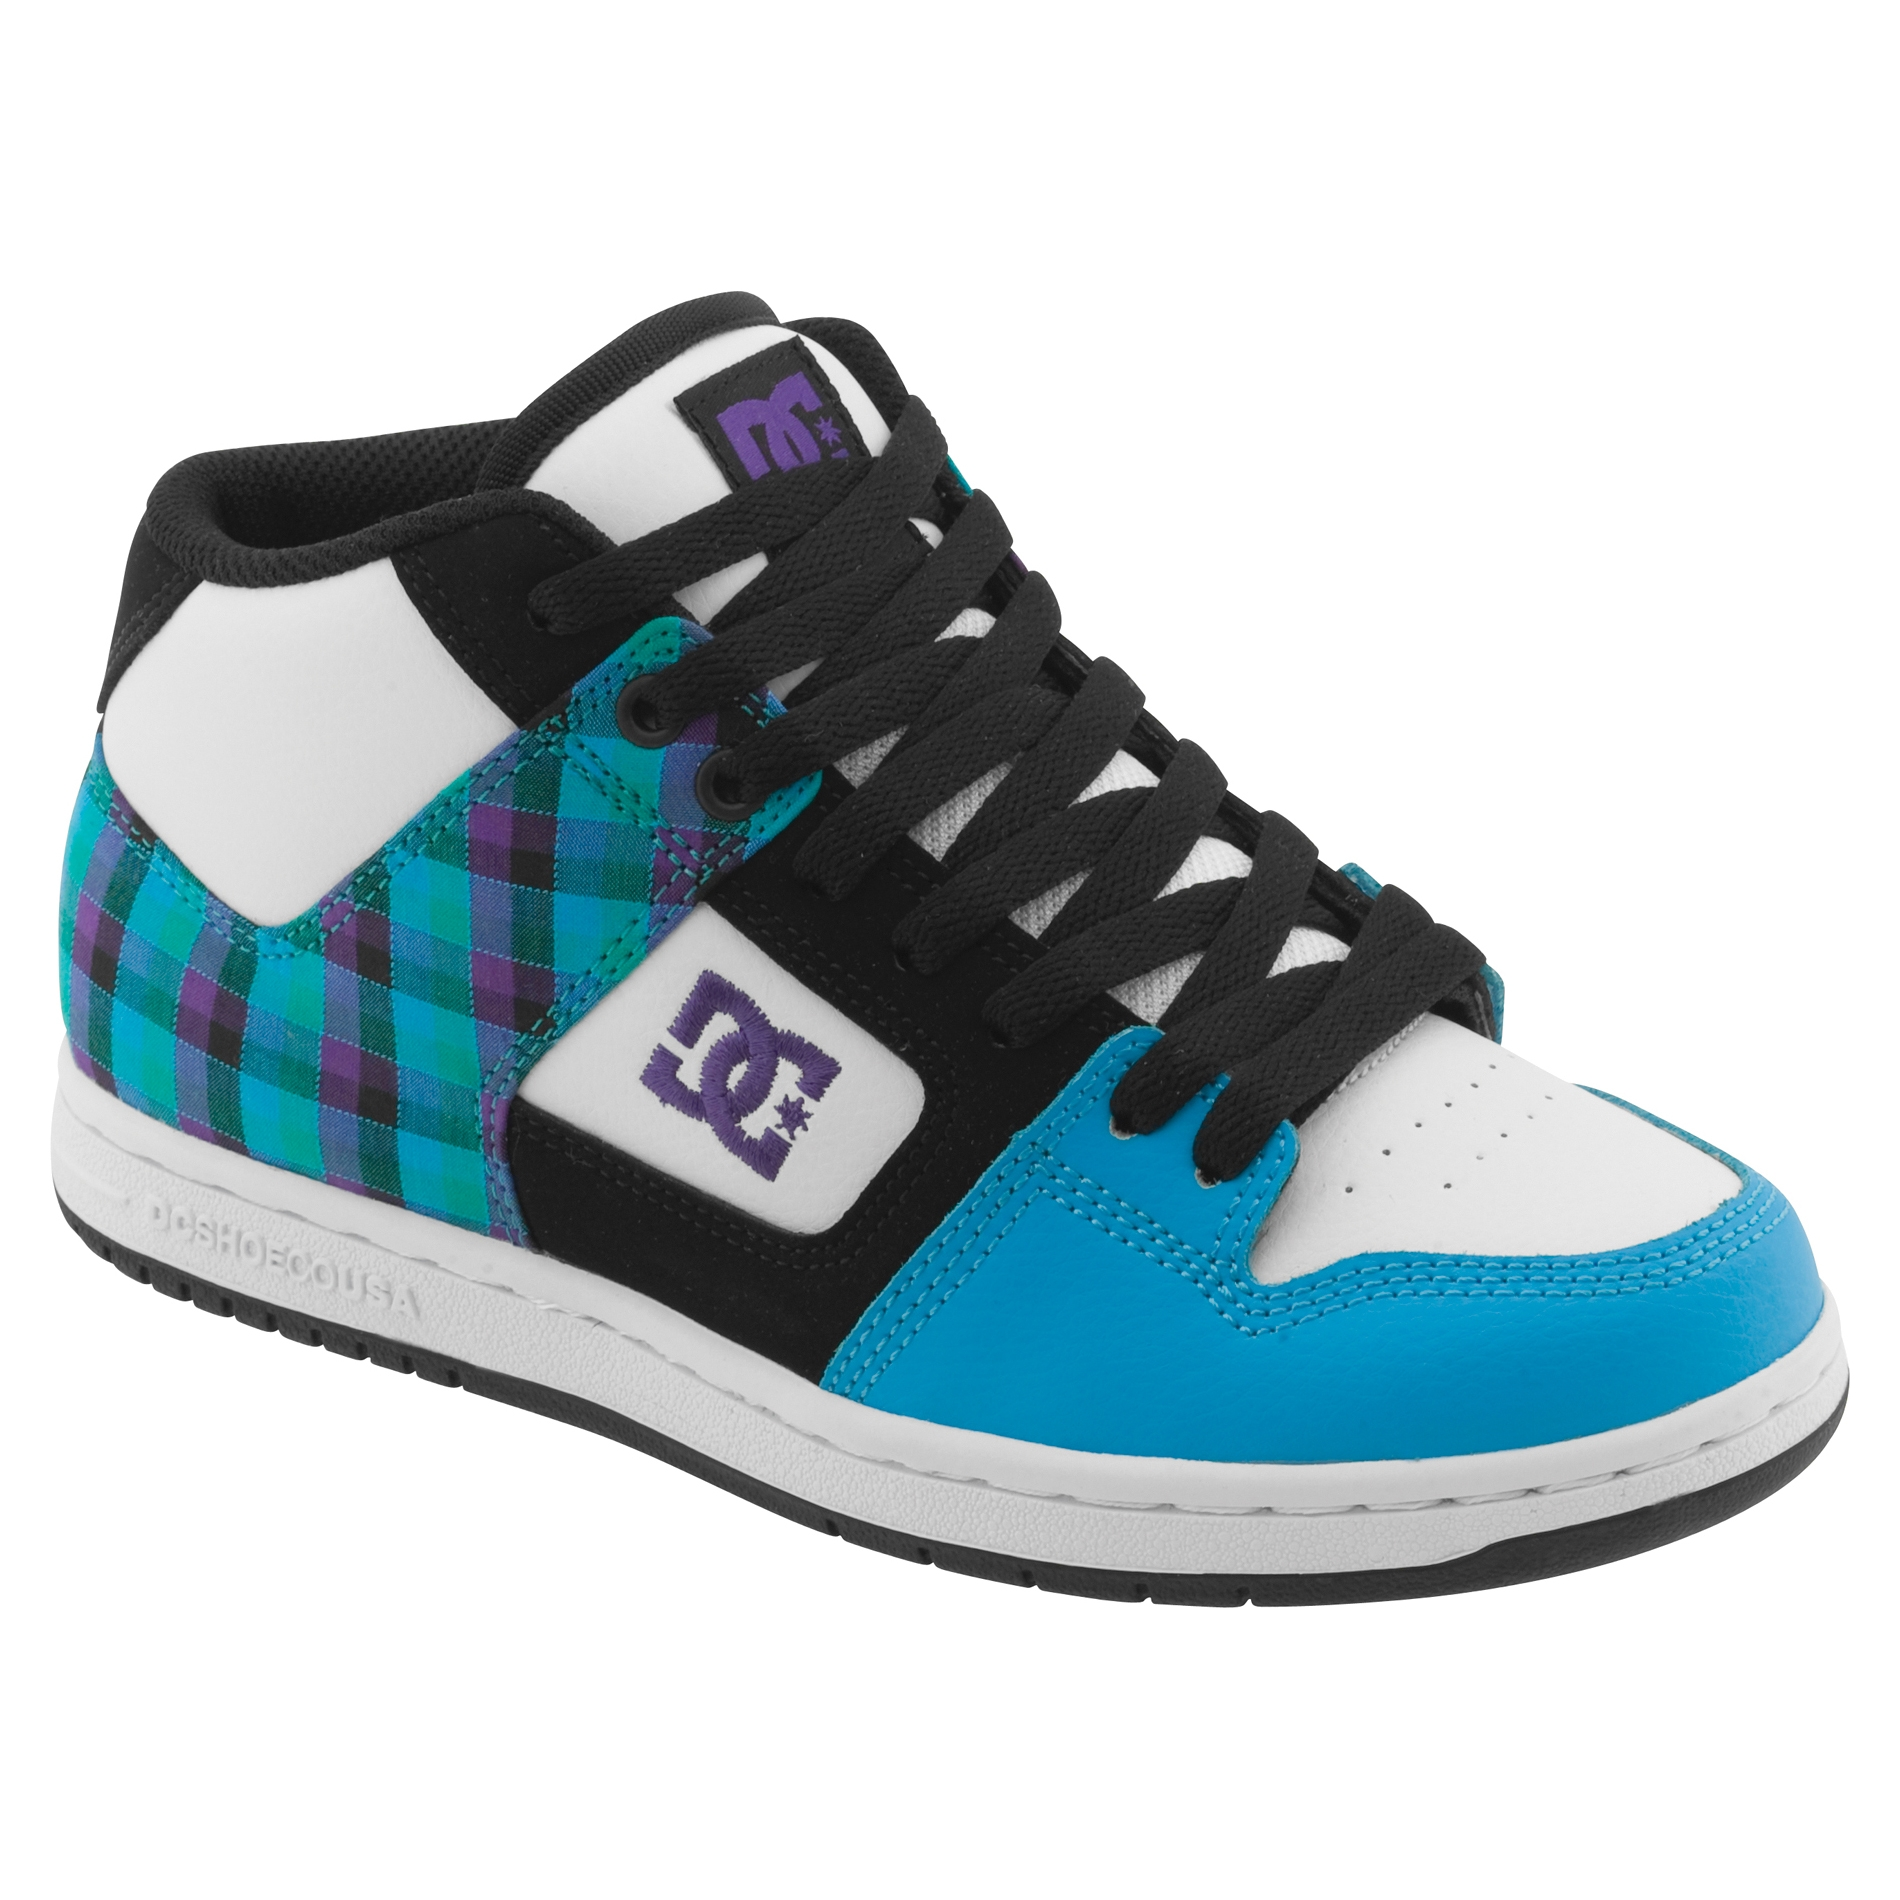 dc shoes manteca 2 turquoise